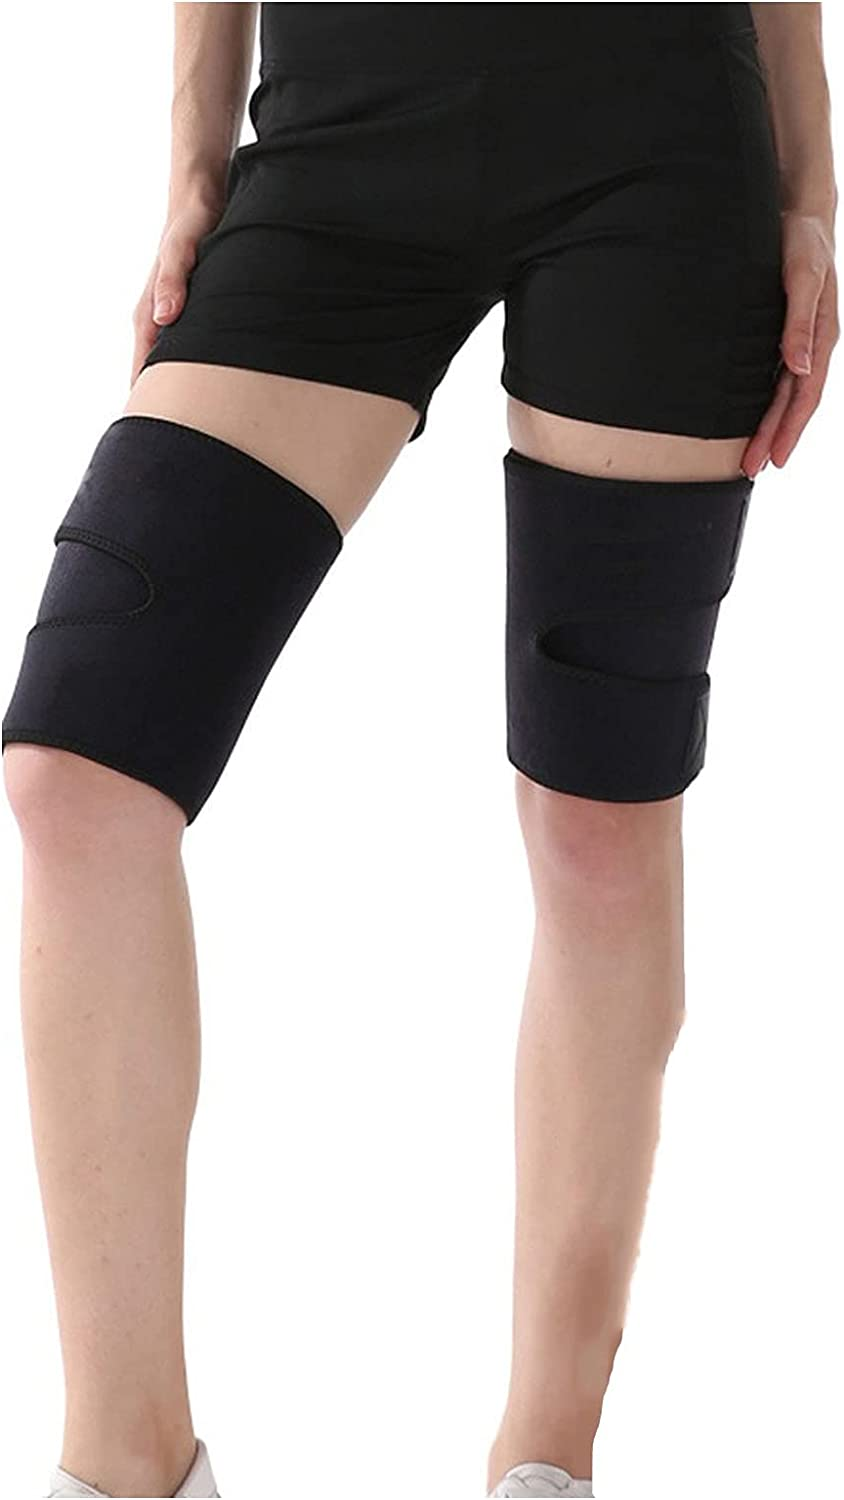 Breathable Thigh Supports Sales results No. 1 Adjustable Support Stability Hip Groin discount